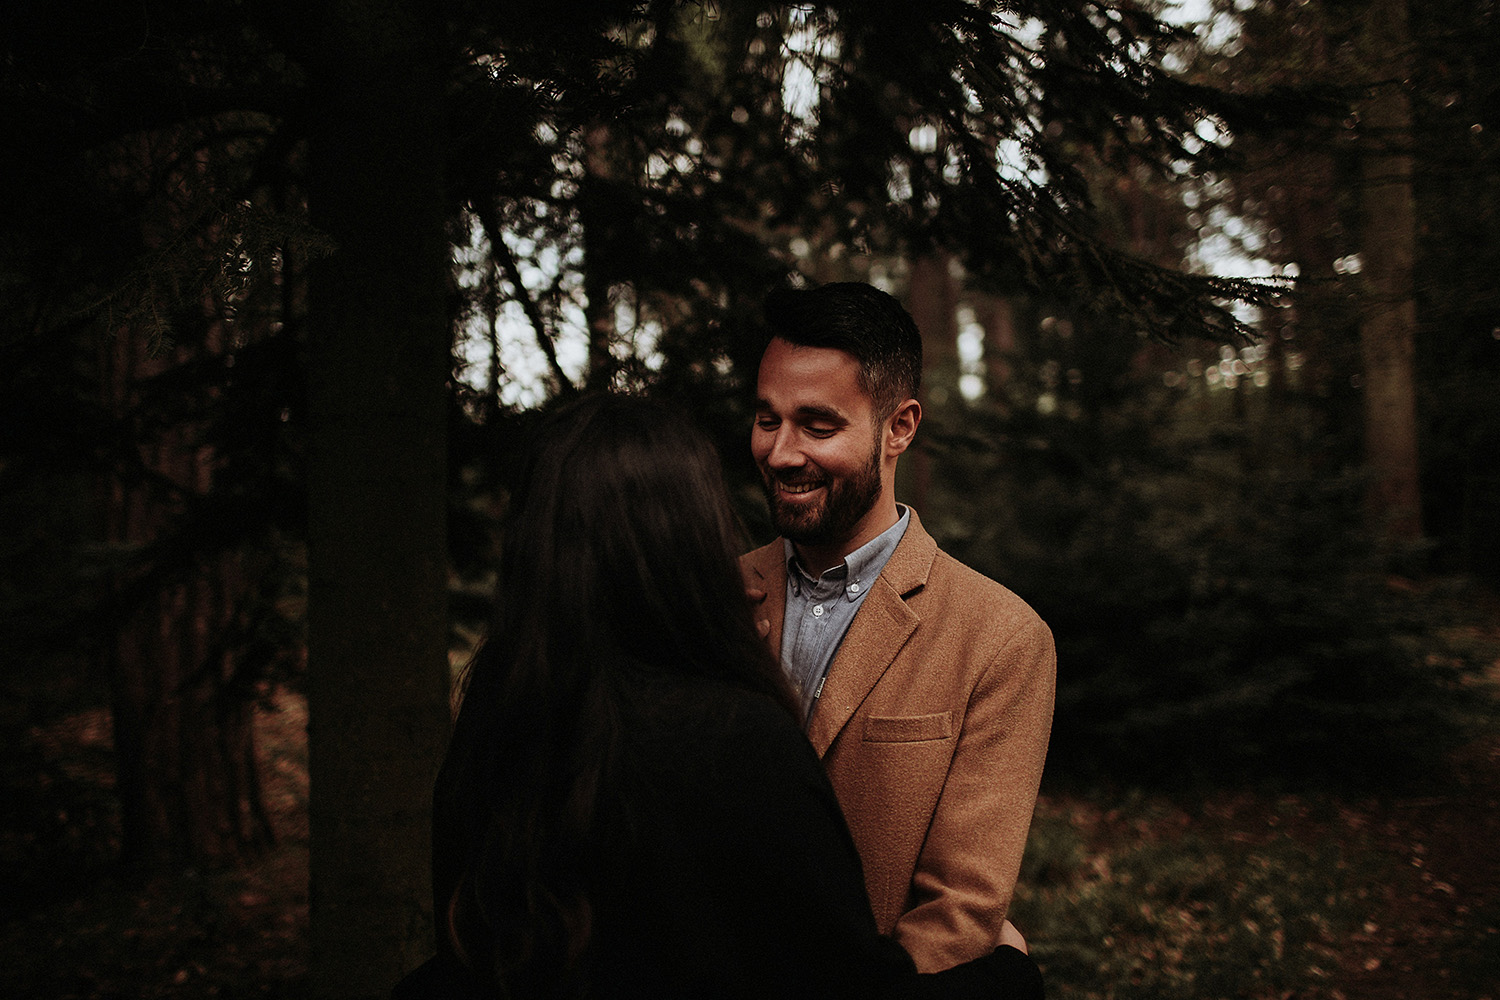 Copy of Copy of Copy of Copy of Copy of Copy of Copy of Copy of Copy of Copy of Copy of Copy of couple share laugh during London engagement session